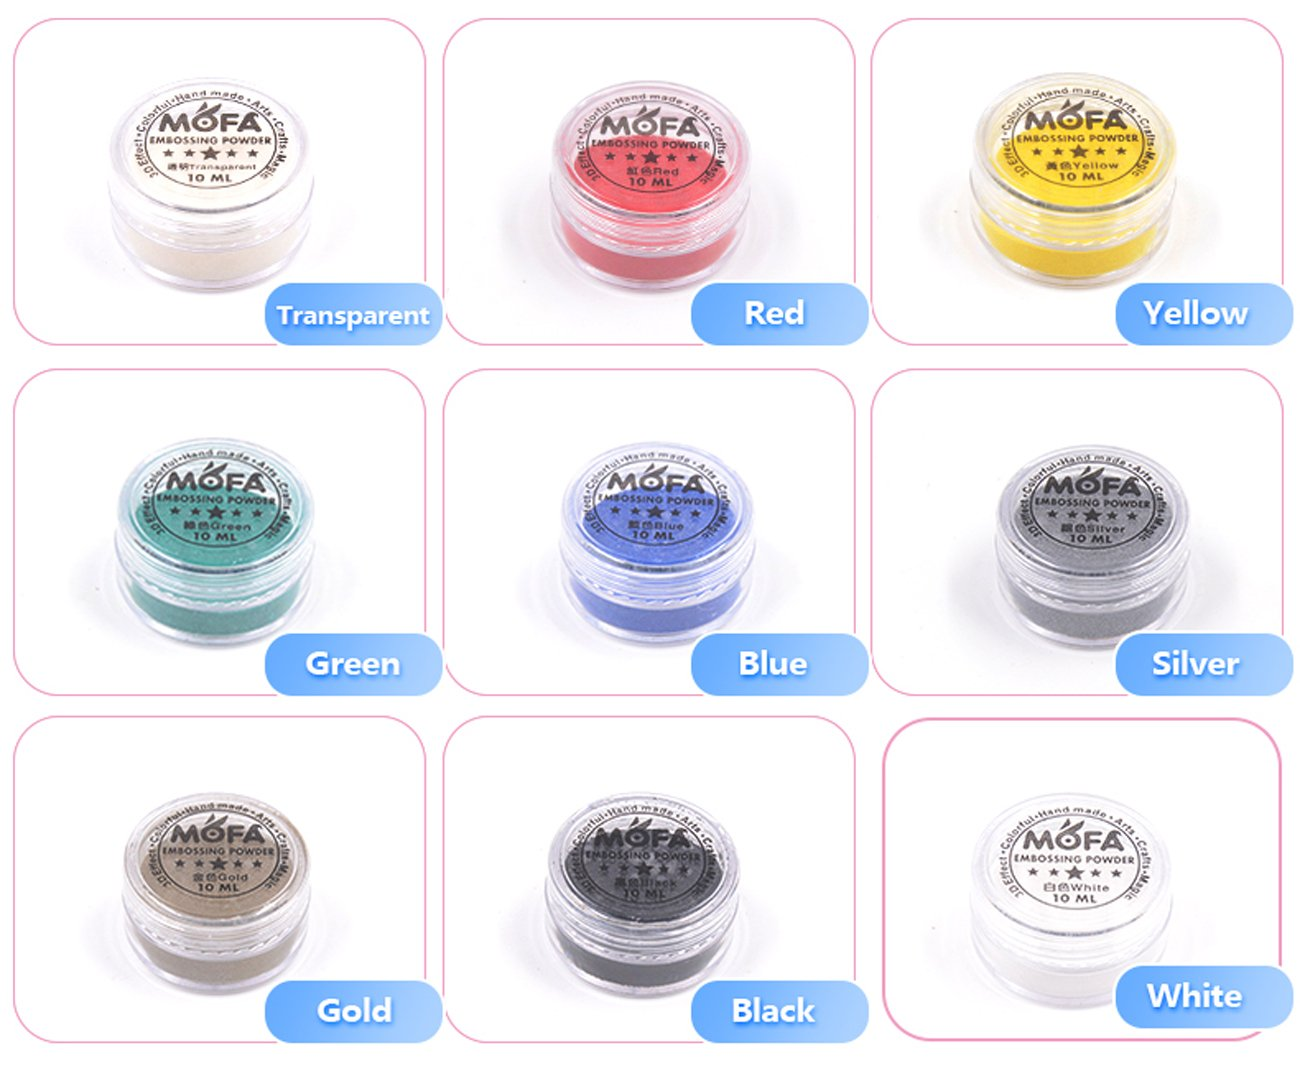 mofa Embossing Powder 9 Piece of Set,9 Tin Colorful Super Fine Embossing Powder,Including Black,Yellow,Green,White,Blue,Red,Silver,Gold and Transparent (Small)